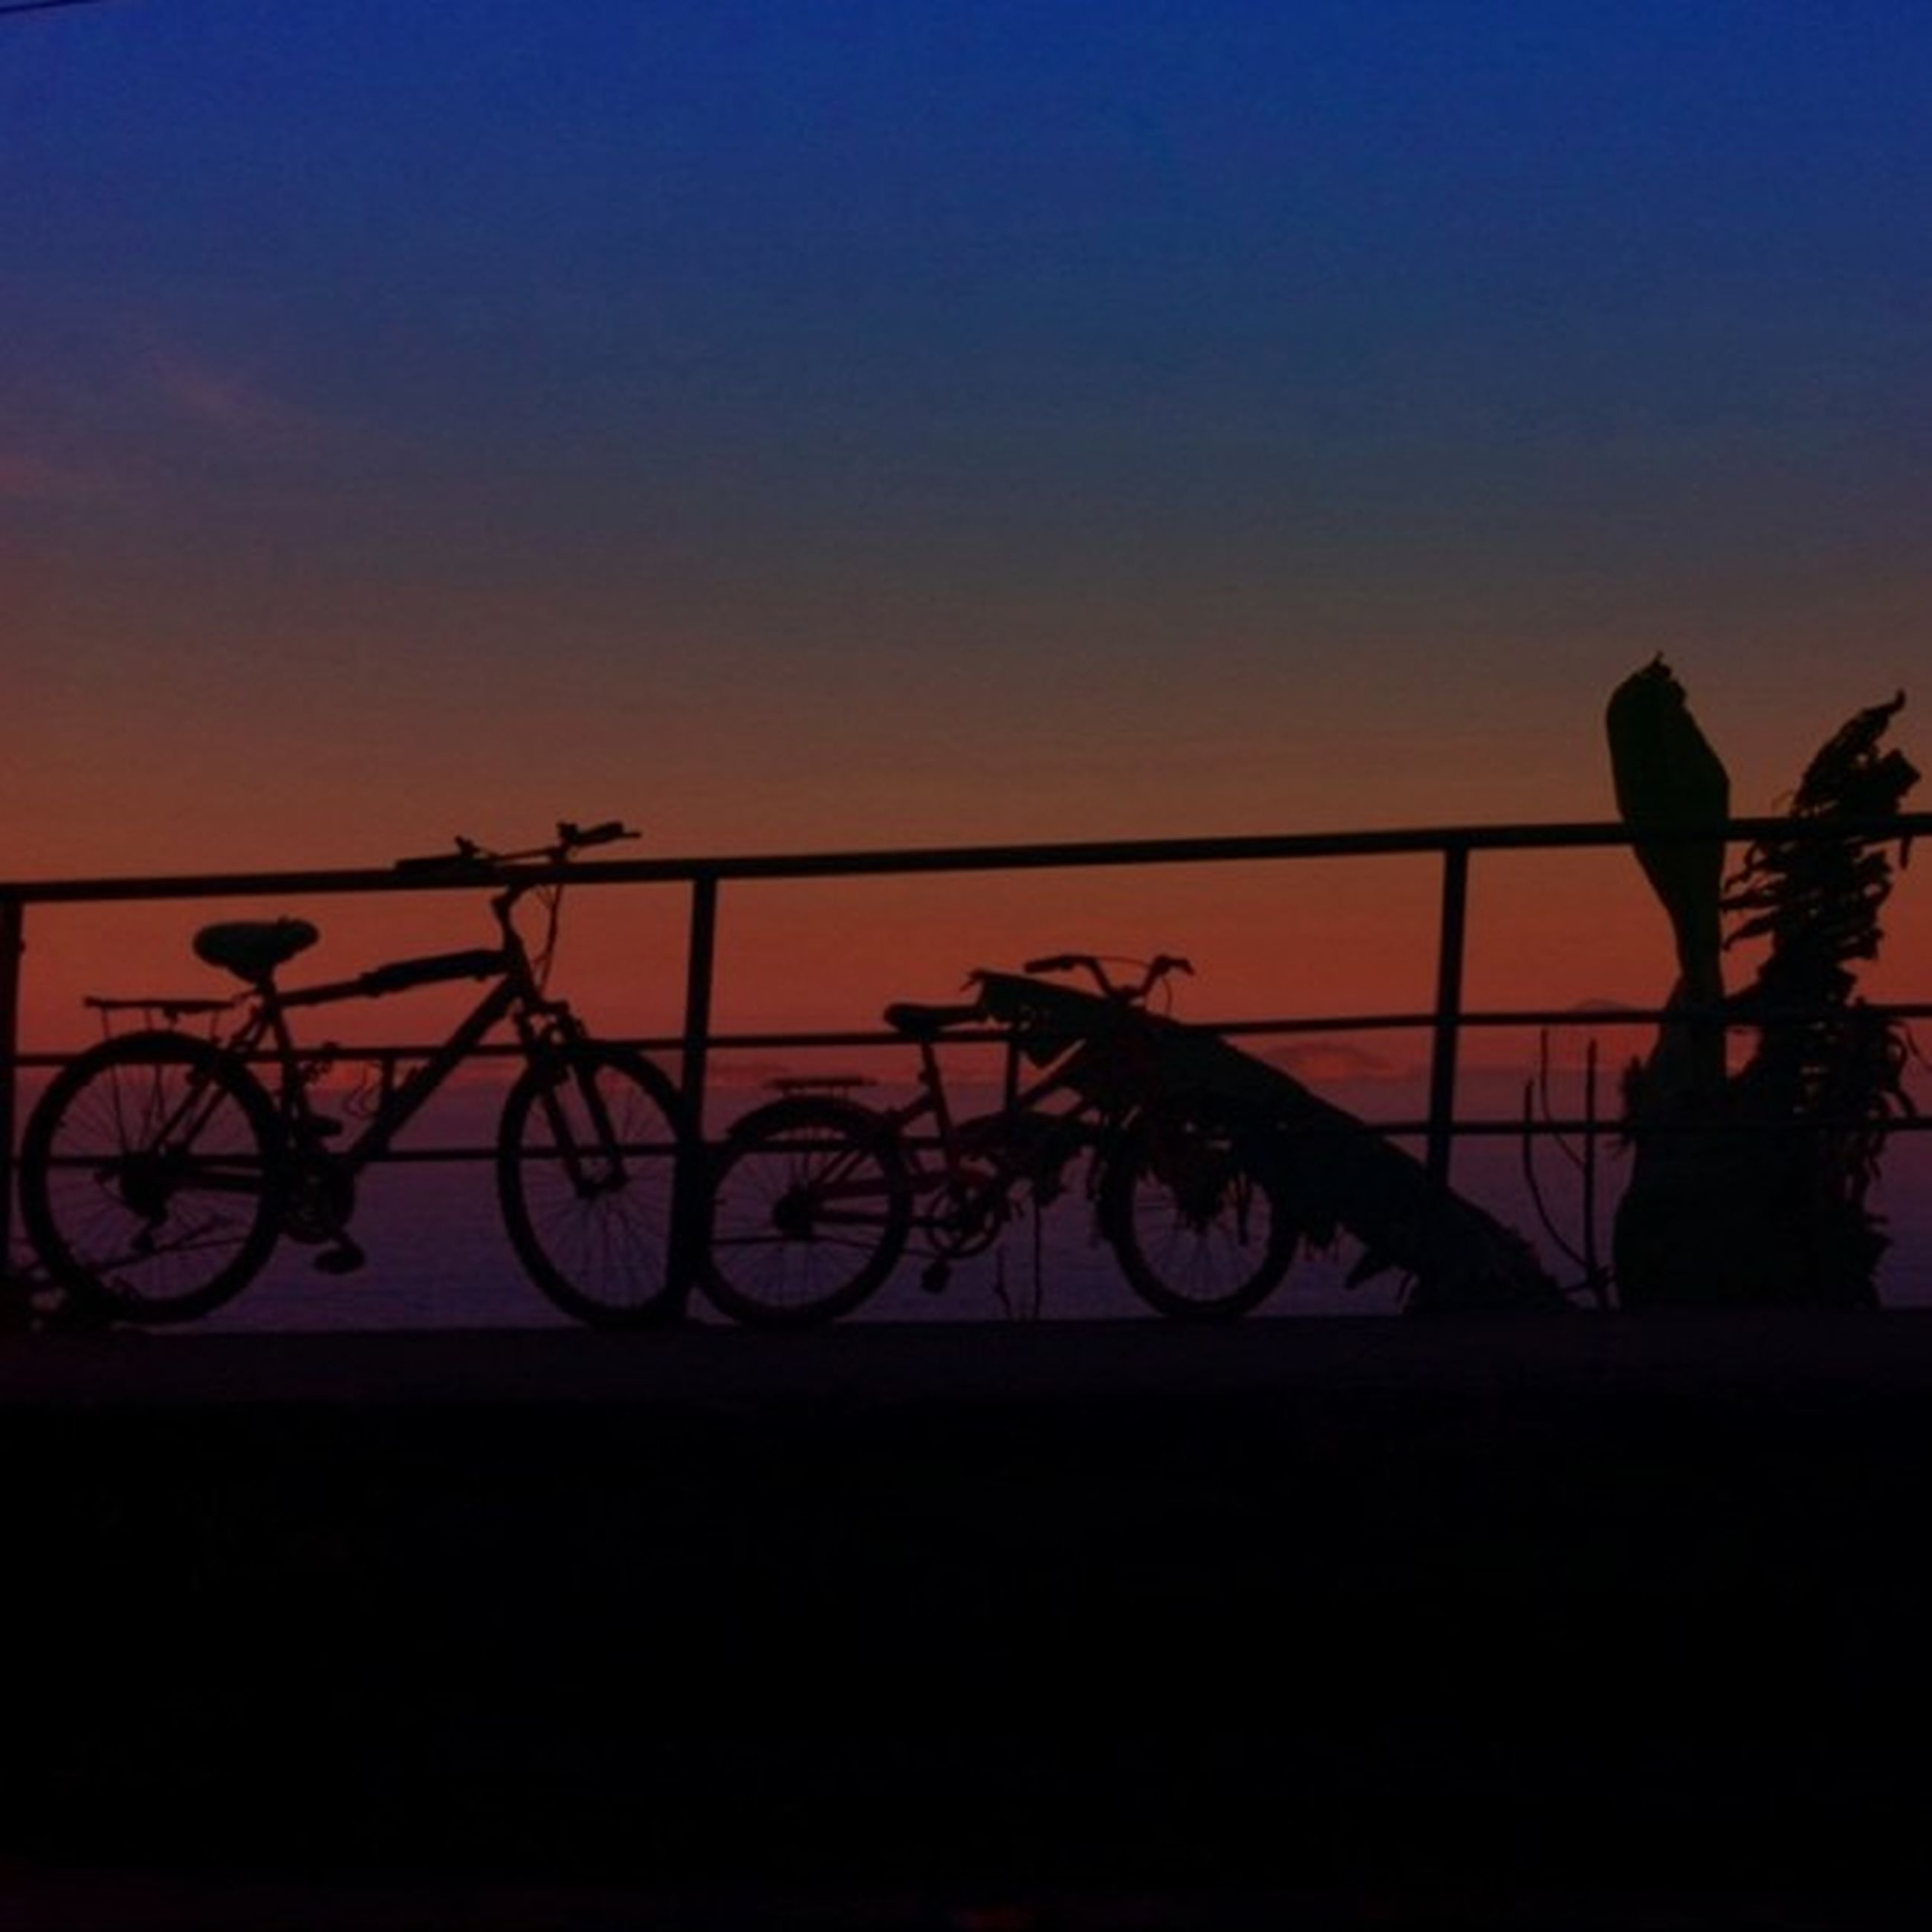 sunset, silhouette, sky, bicycle, orange color, copy space, transportation, dusk, outdoors, clear sky, mode of transport, nature, no people, railing, blue, low angle view, land vehicle, creativity, tranquility, art